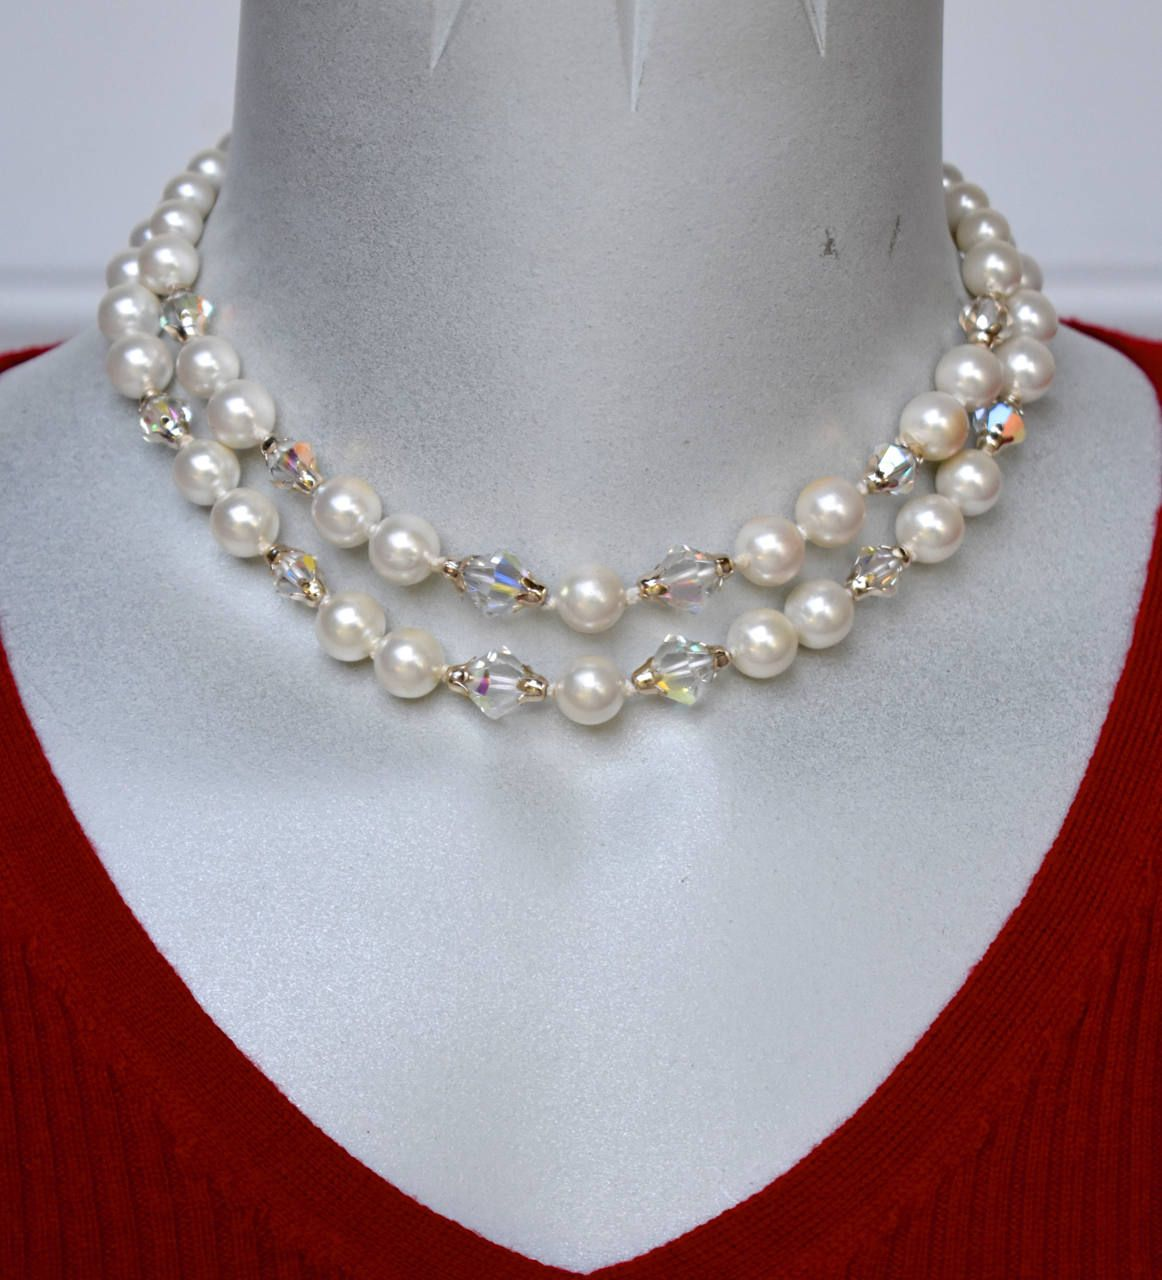 On Sale Collectible Bling Small Bead Faux Pearl  Beaded Necklace 15 inch with Gold Toned Clasp